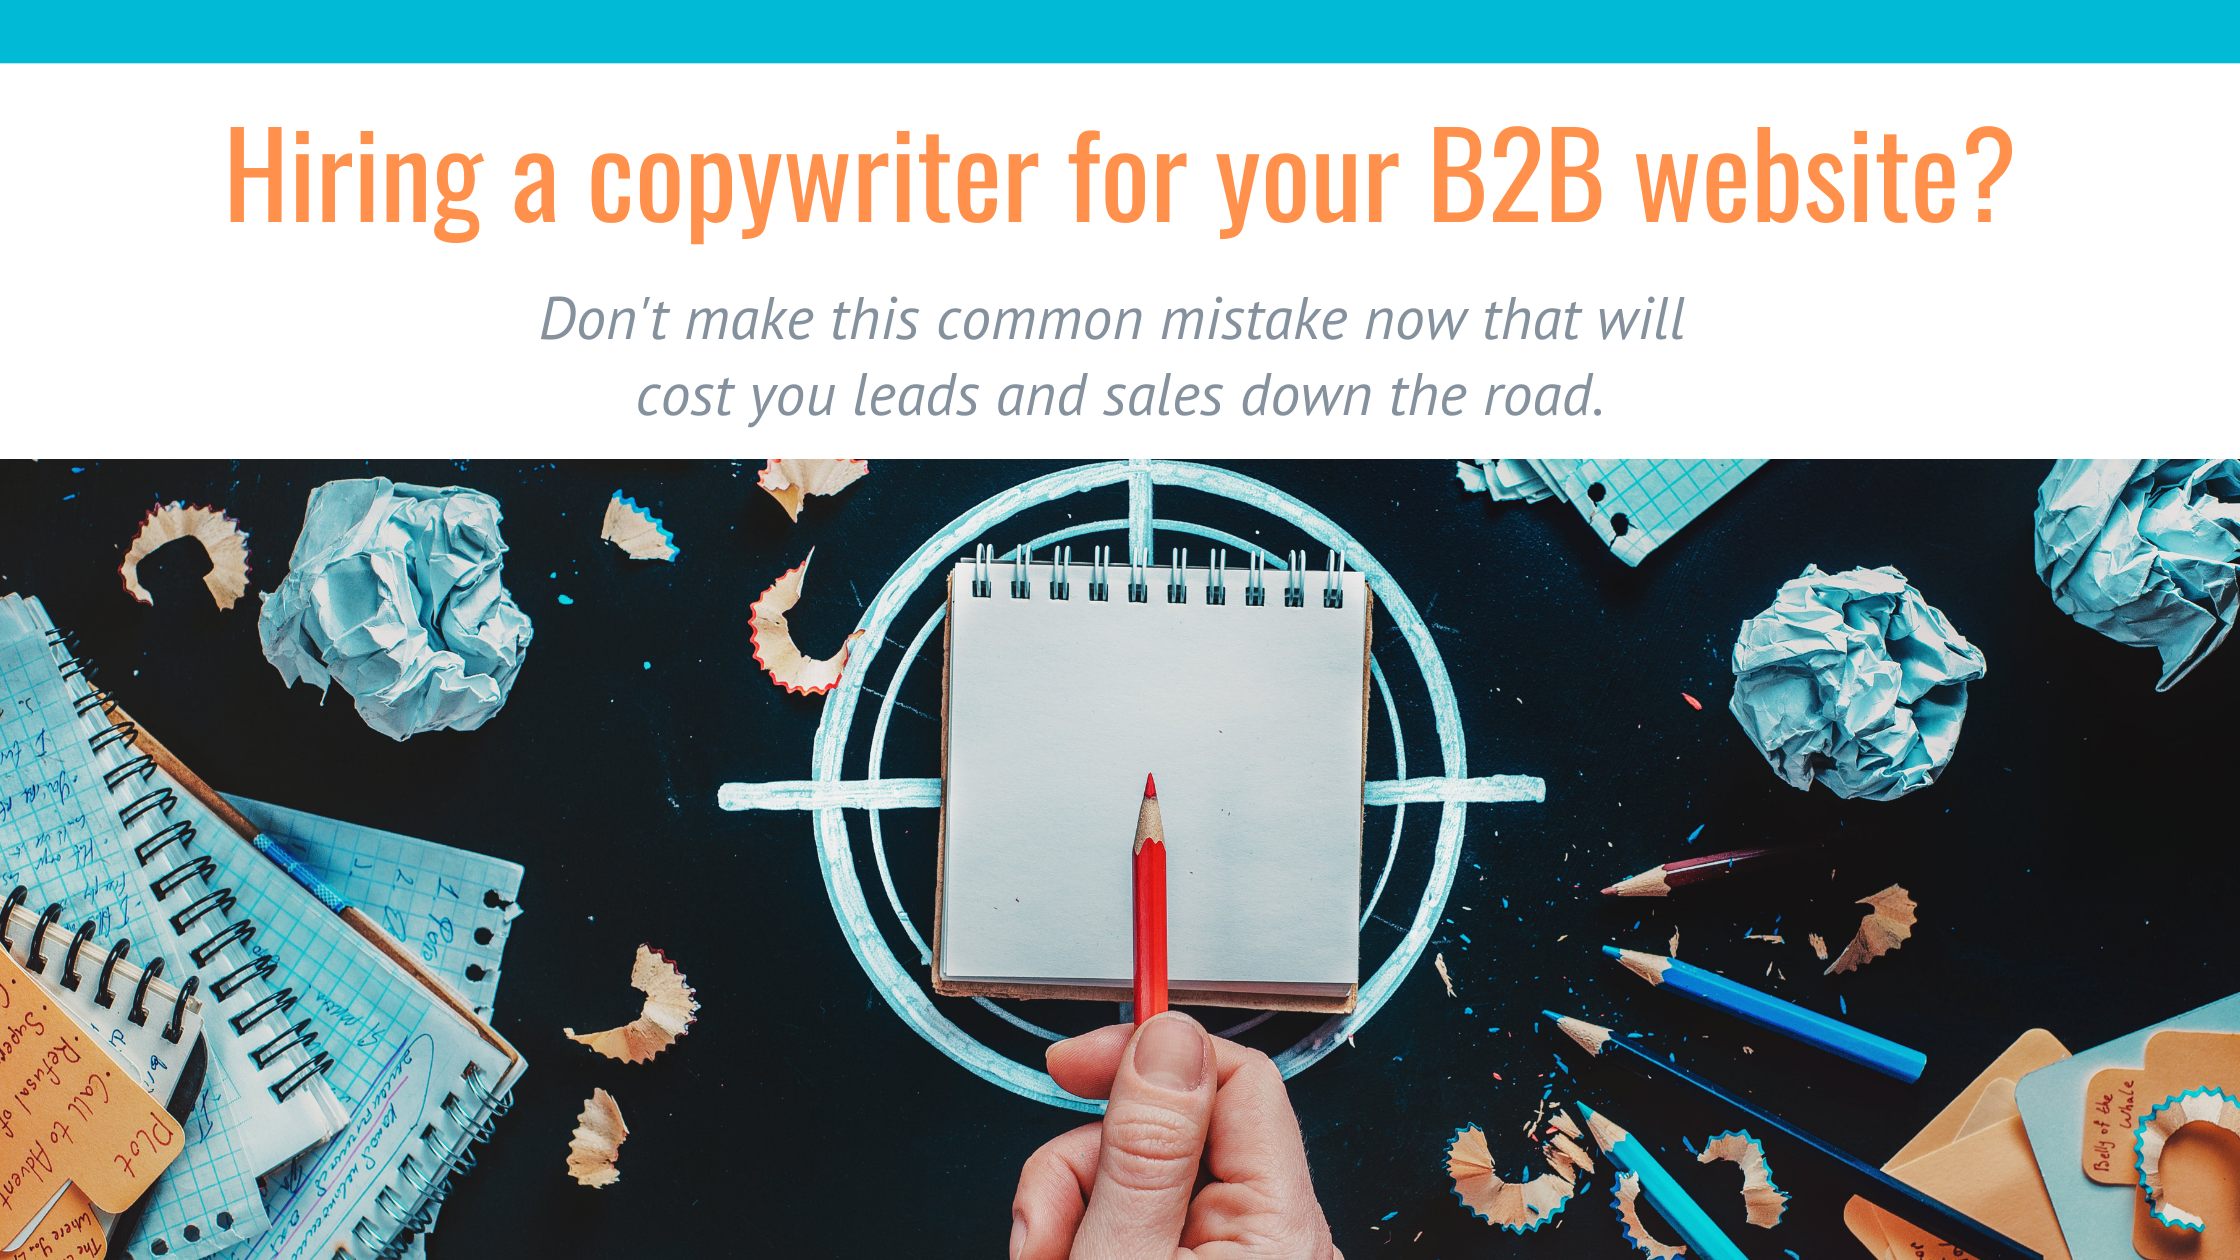 Hiring a copywriter for your B2B website? Don't make this common mistake now that will cost you leads and sales down the road.